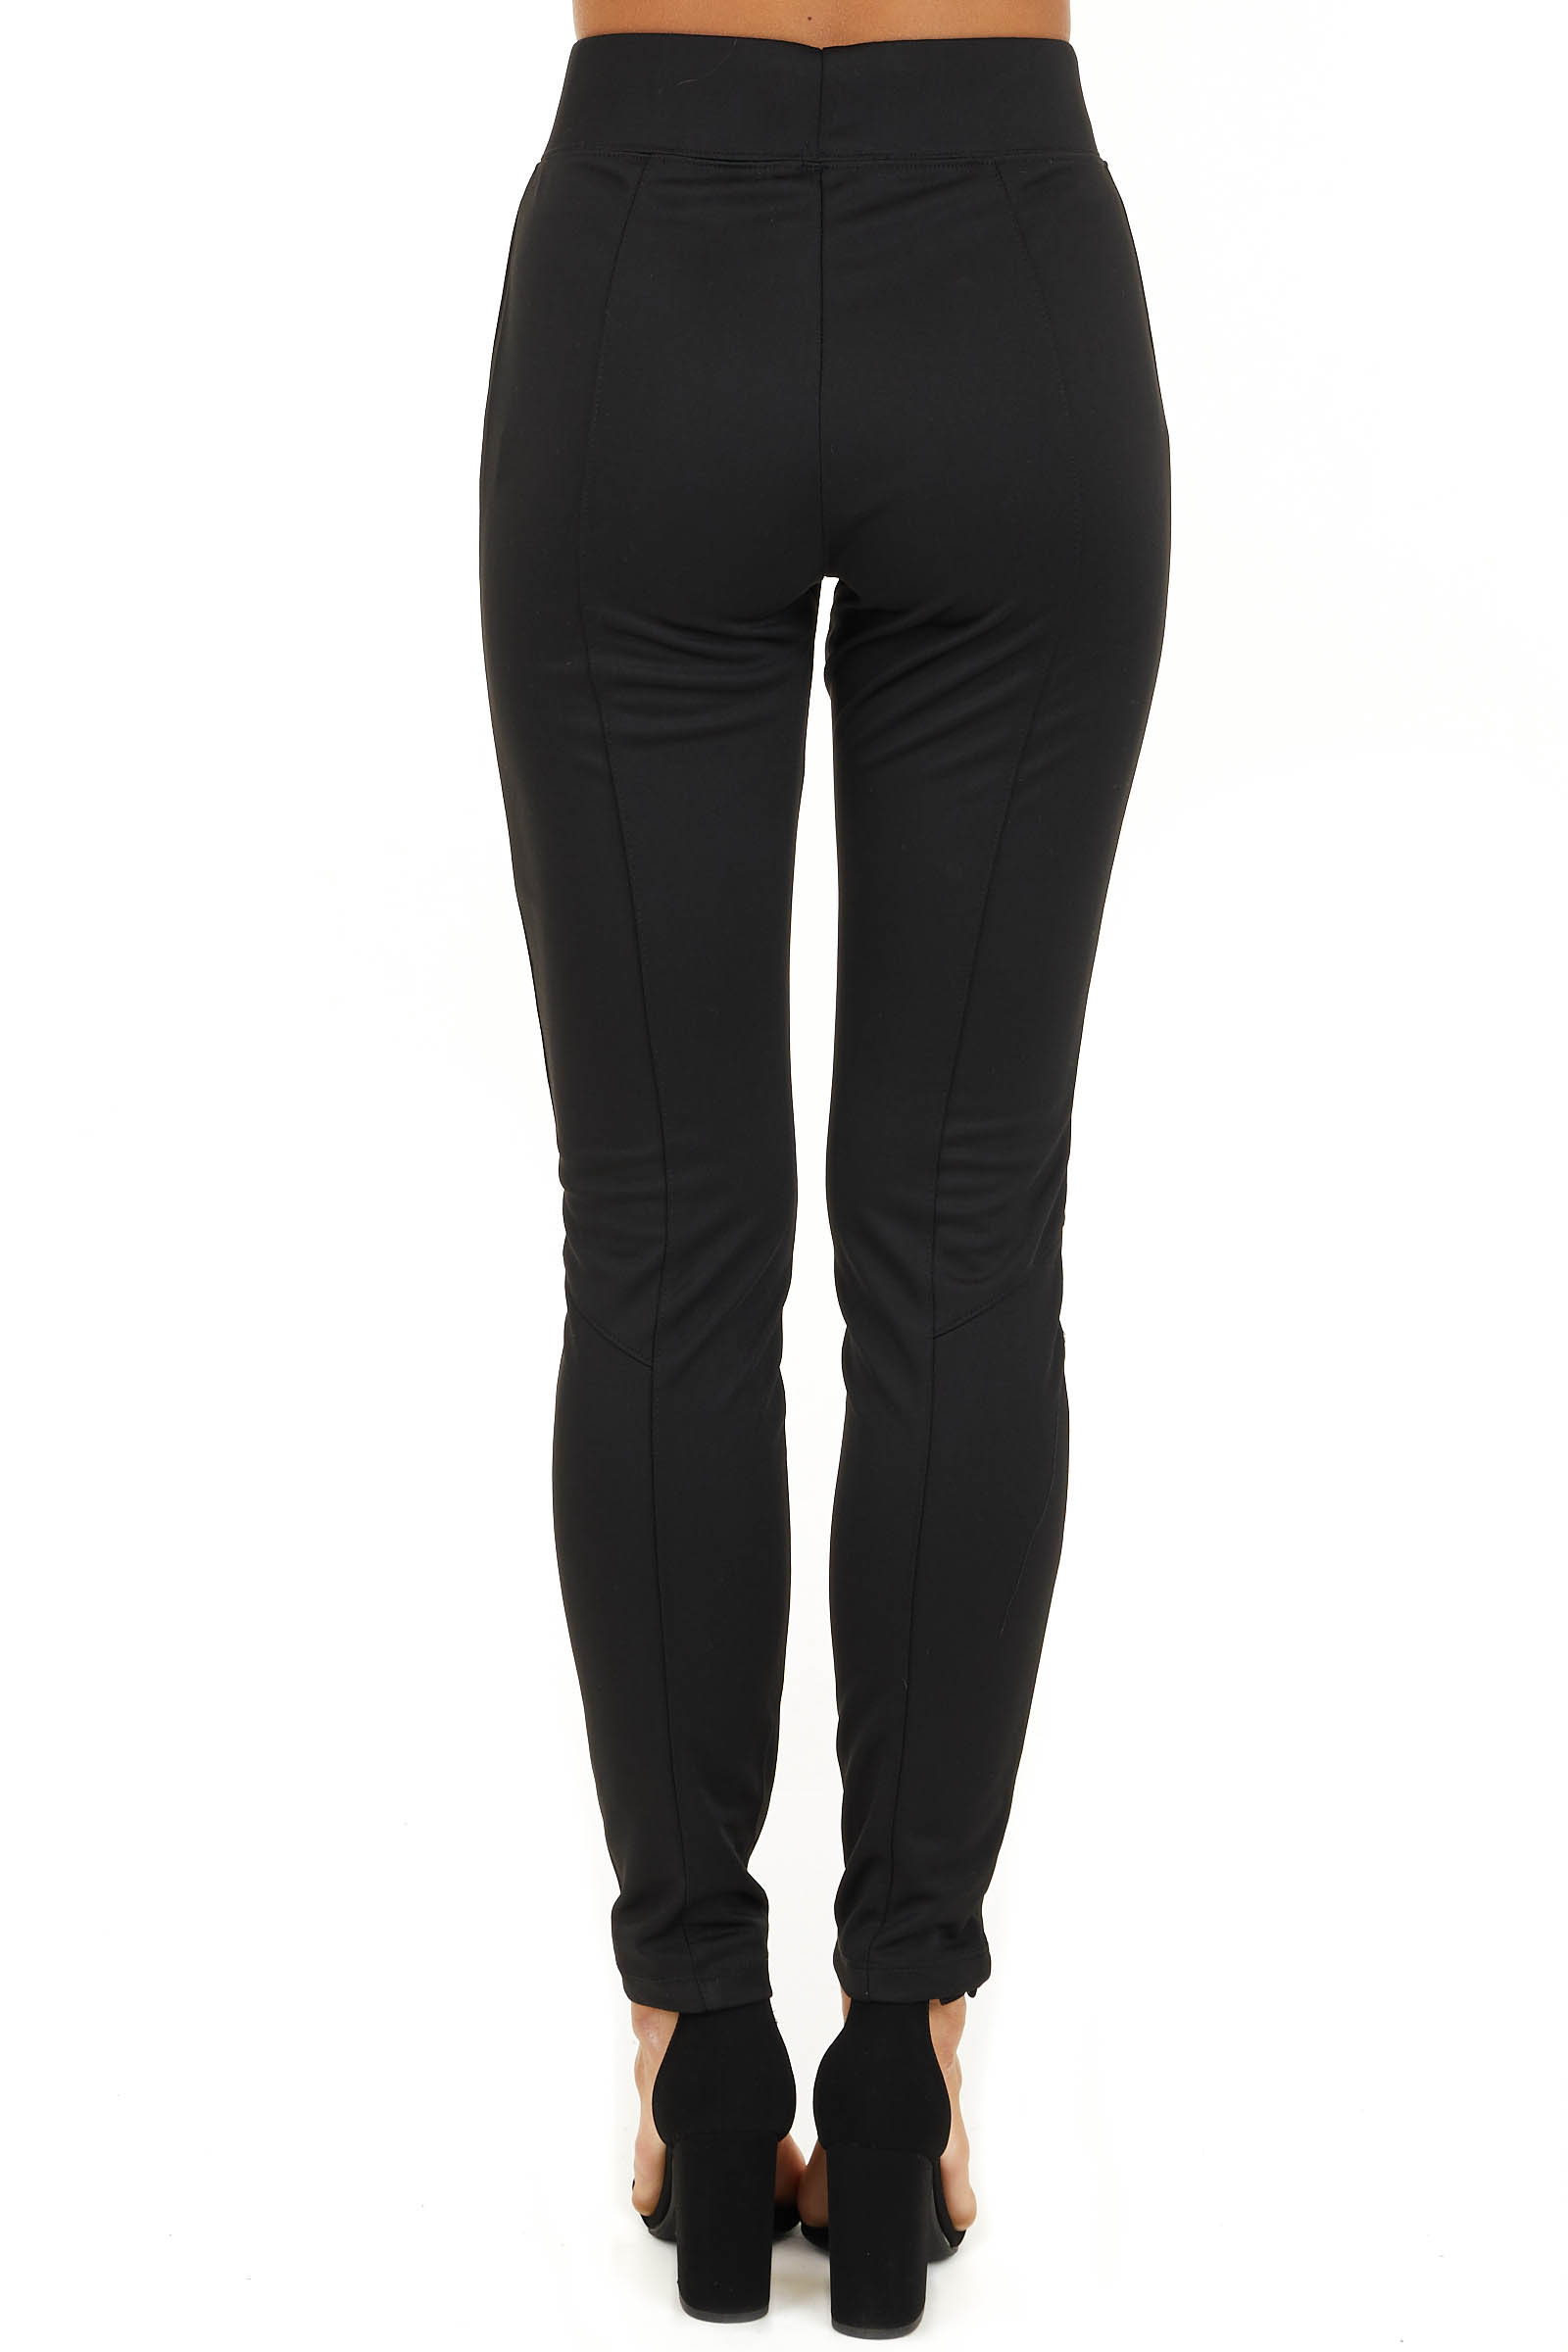 Black High Waisted Leggings with Elastic Waistband back view